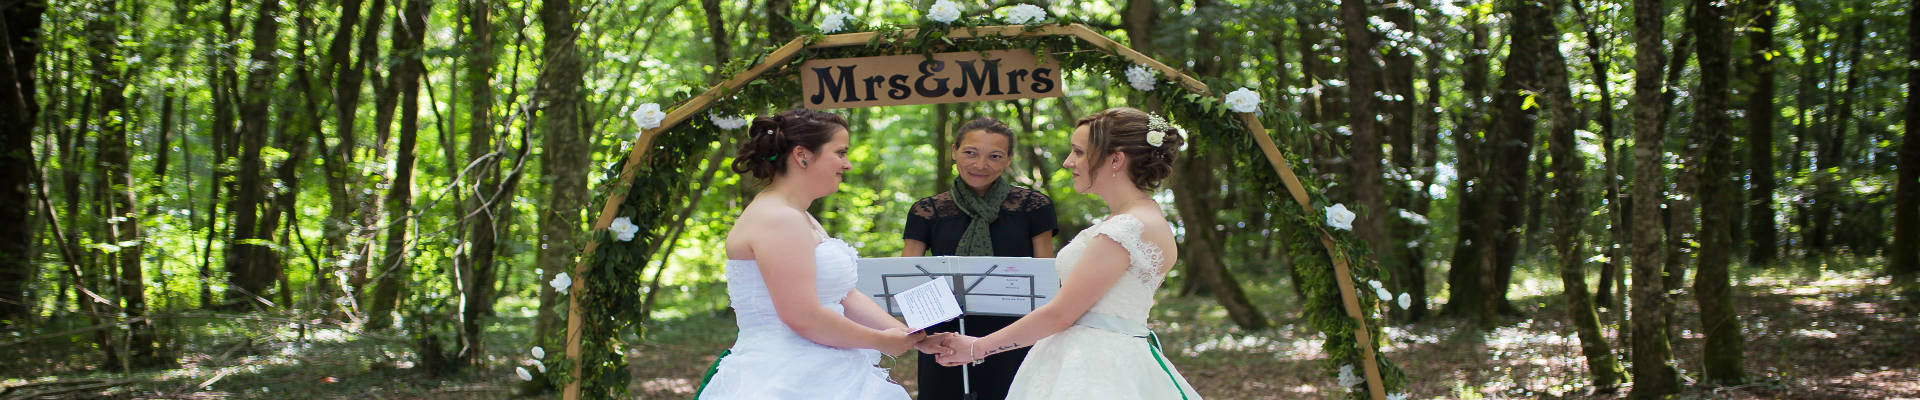 wedding ceremony - gay marriage ceremony in france